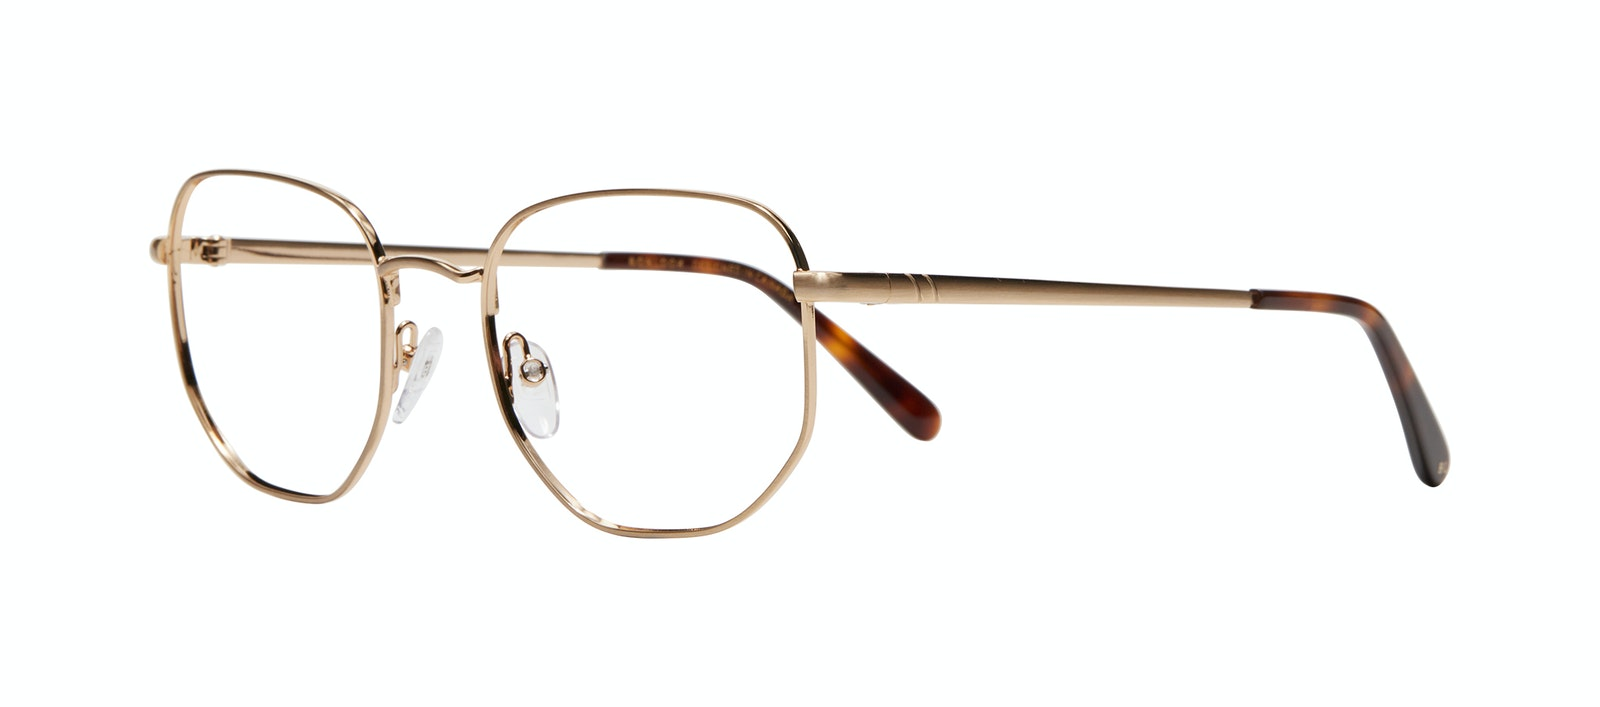 Affordable Fashion Glasses Square Eyeglasses Men Global L Matte Gold Tilt